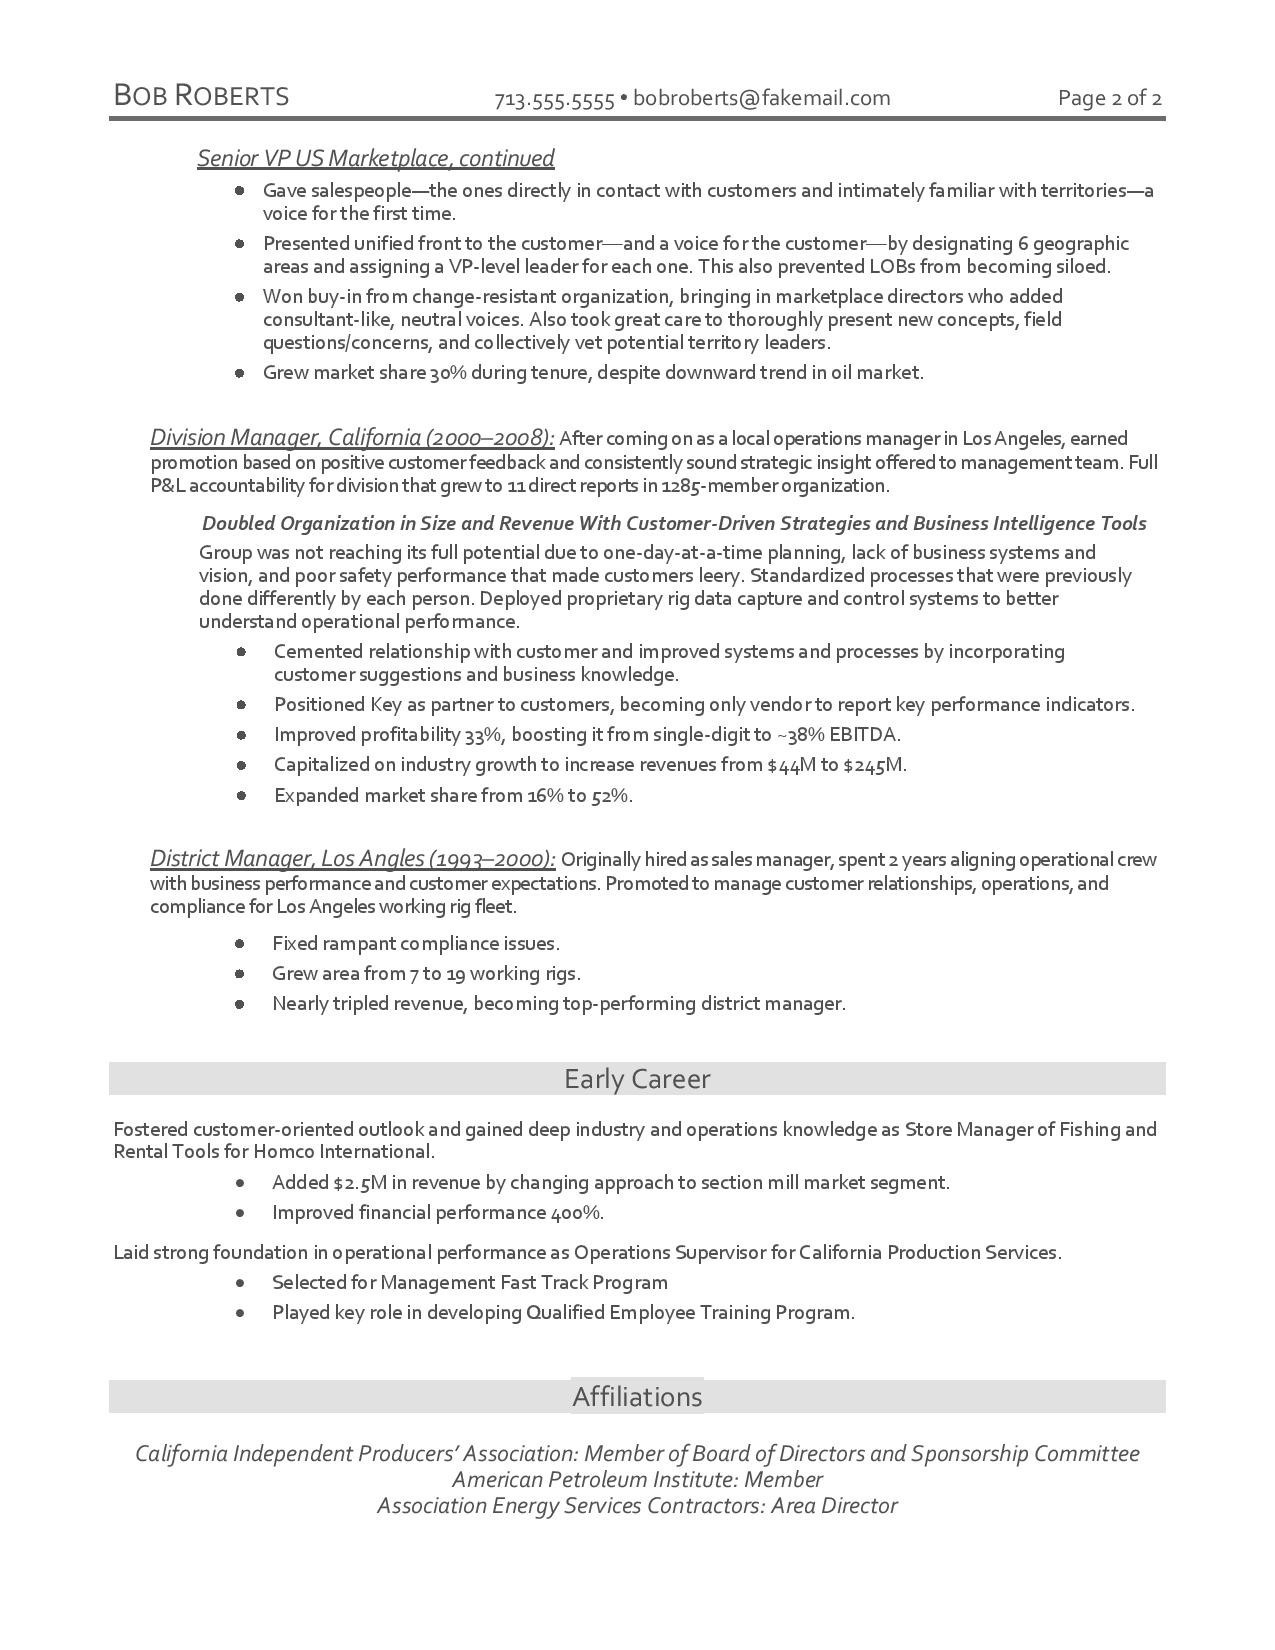 Internal Promotion Resume Sample - Resume for Internal Promotion Template Valid Beautiful American